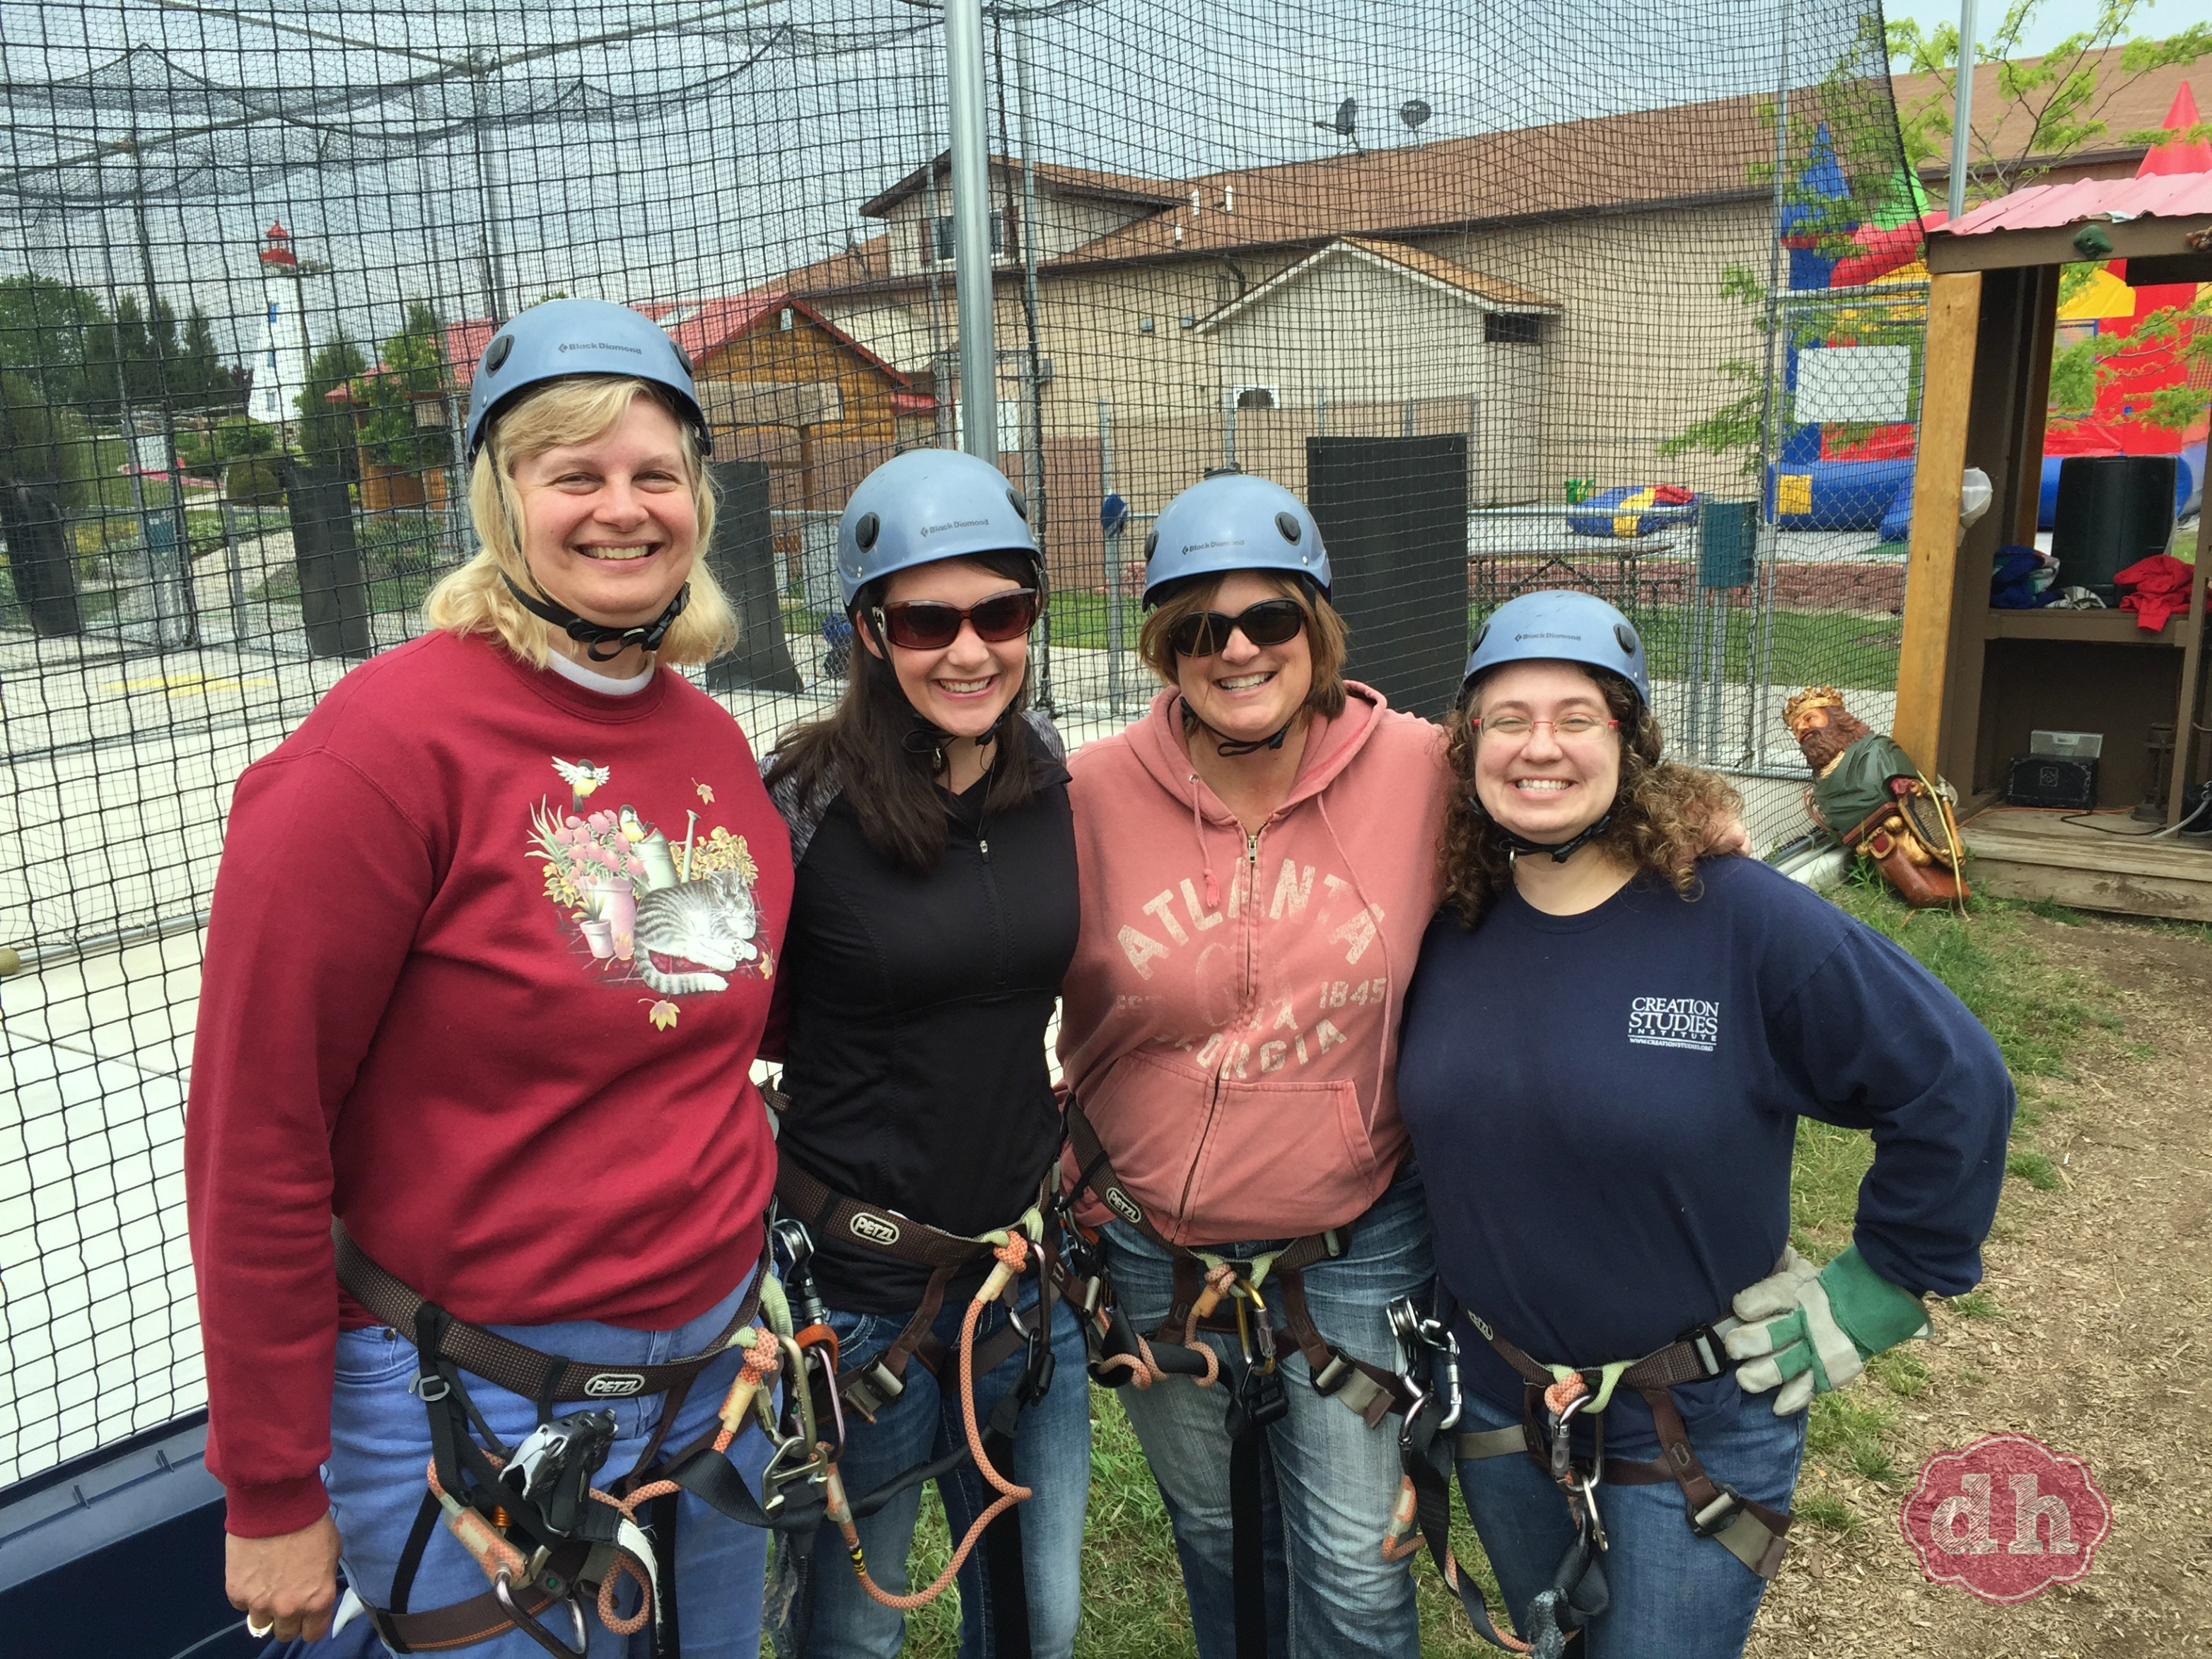 Zip Lining at Gravity Trails